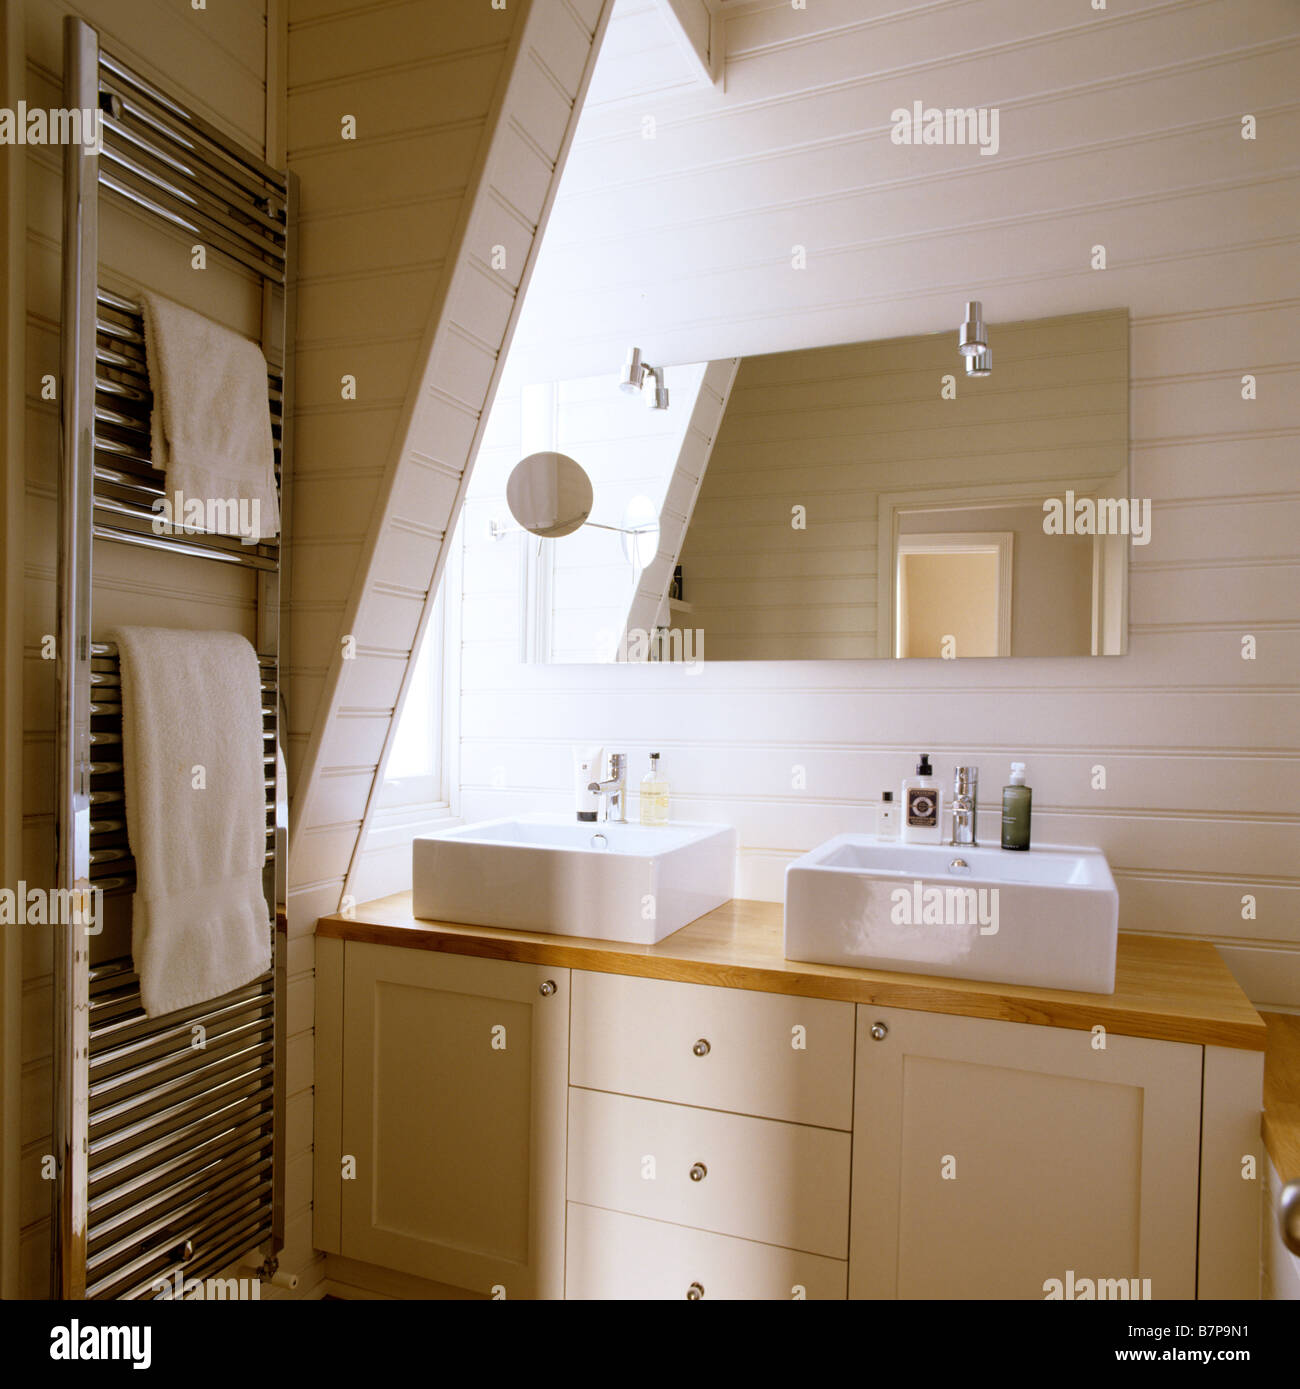 Modern wood panelled bathroom with double basin and metallic towel rail. - Stock Image